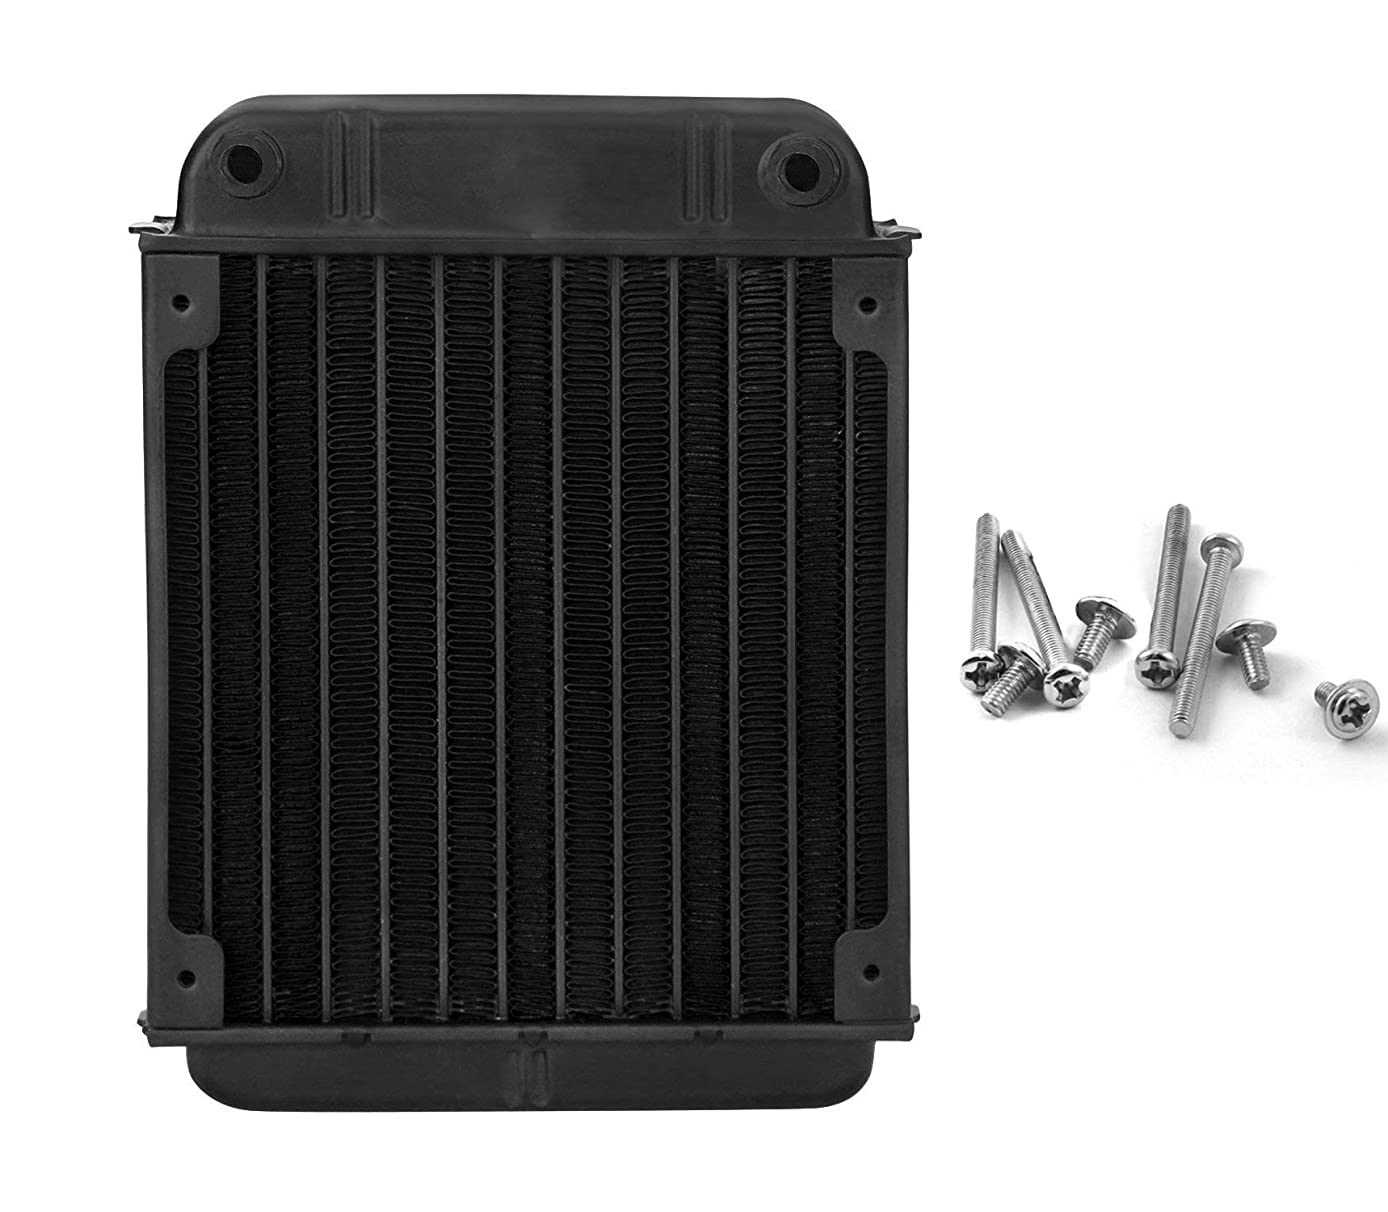 YXQ 12Pipes Computer Radiator Water Cooling Cooler Aluminum Heat Exchanger 6.22''x4.72'' for CPU Heat Sink